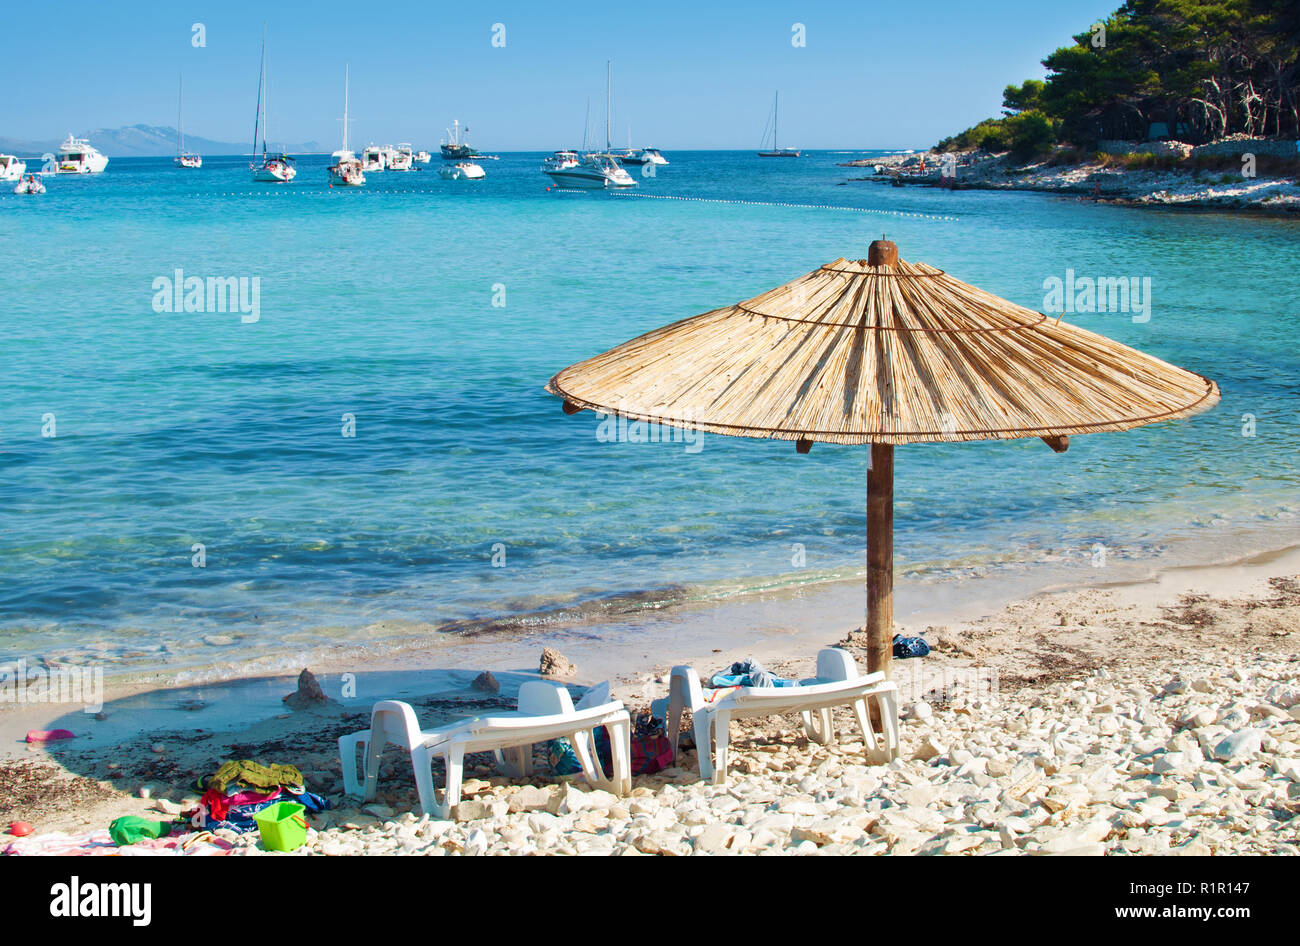 One yellow straw umbrella and two chairs on the pebble sandy beach. Many yachts in the azure blue sea lagoon in a bay near the coast of an island. Blu - Stock Image